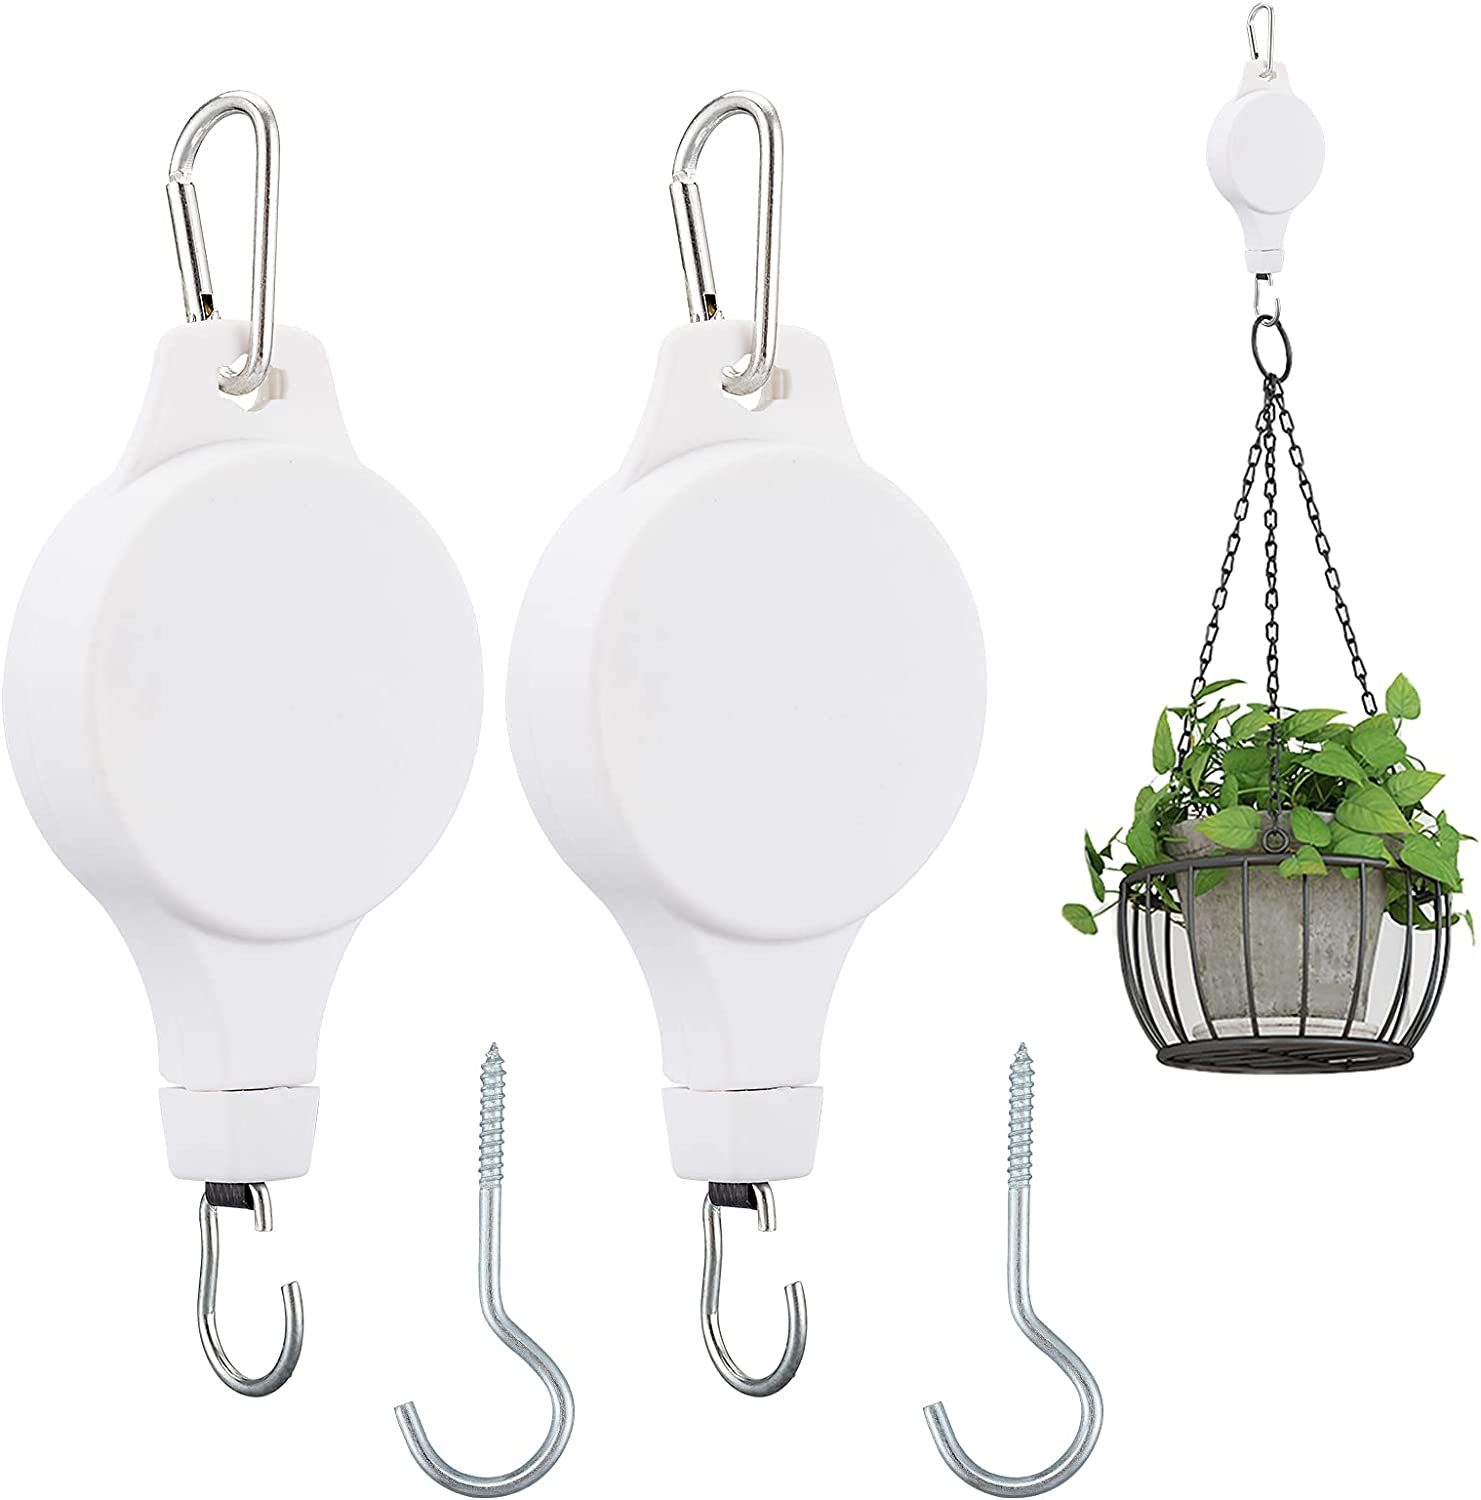 ALSA Cheap mail order sales 2Pcs Adjustable Plant Pulley 2pcs Hanger Metal Ceiling Max 51% OFF with